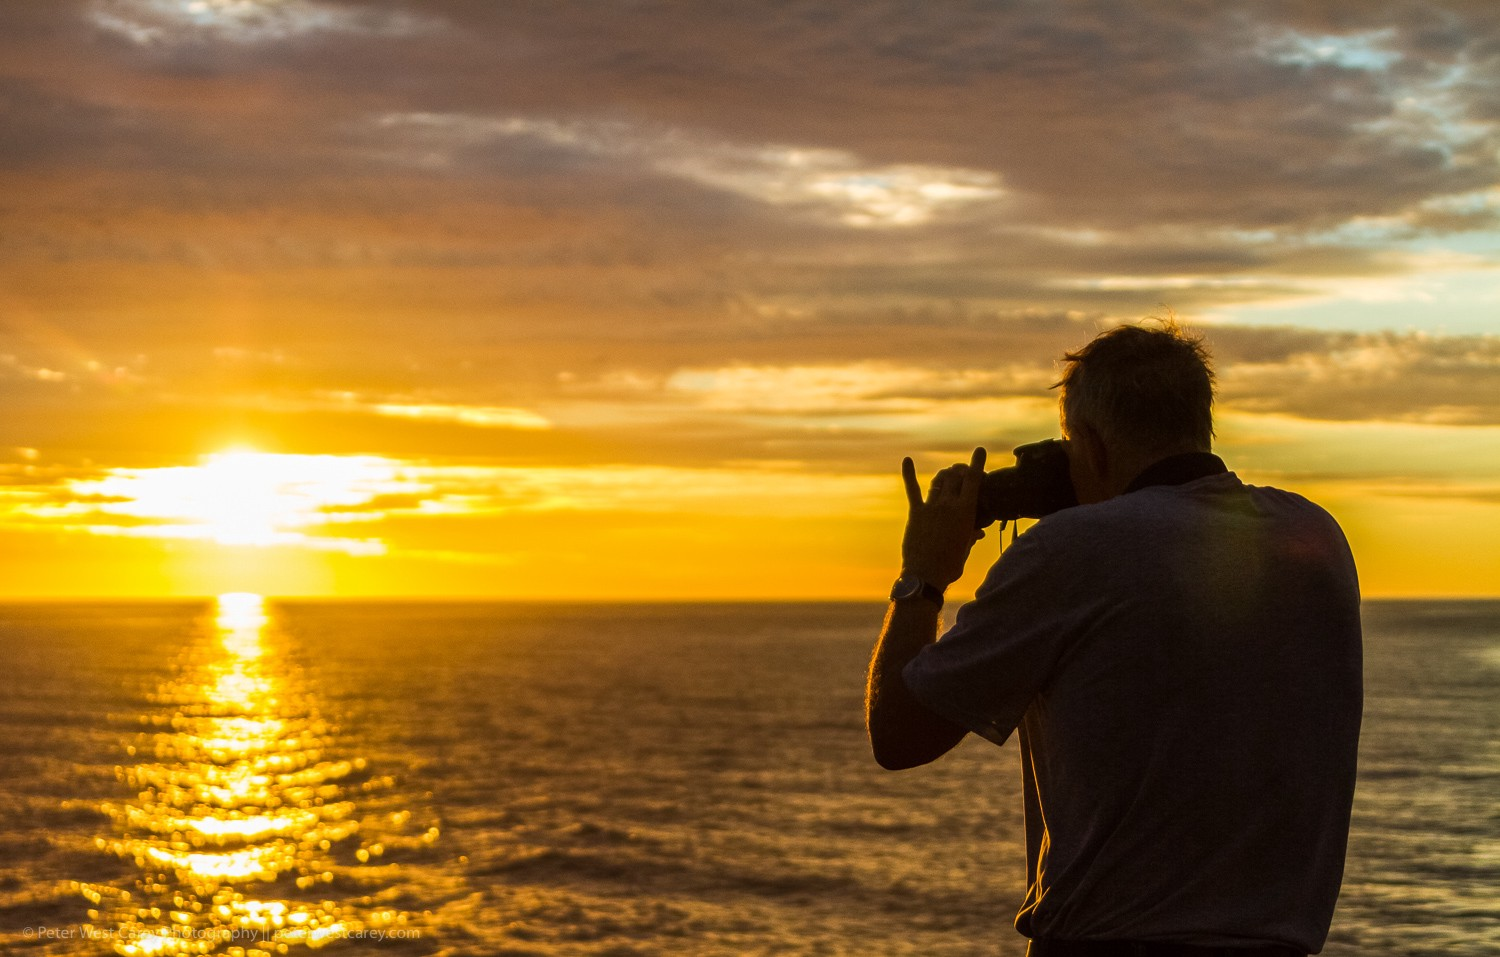 Man taking a photo with his camera. A beuatiful sunset in background.